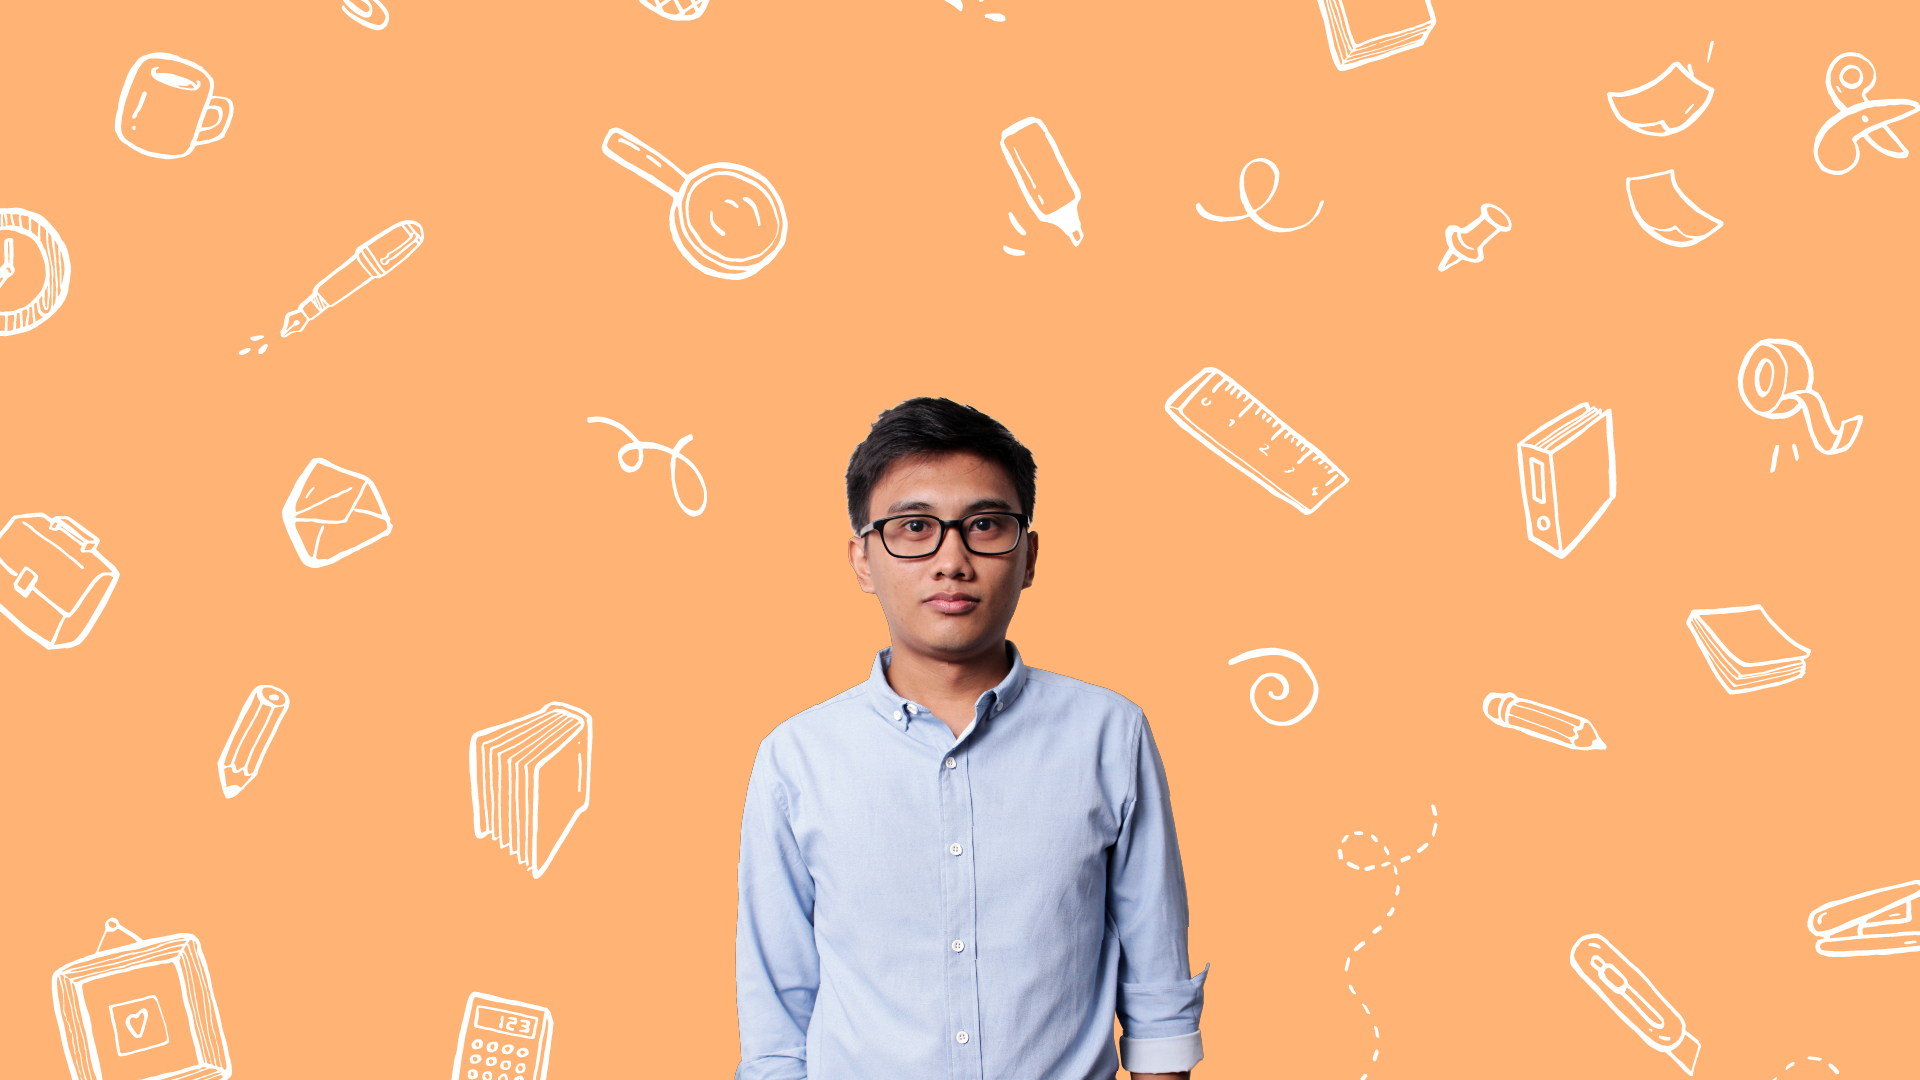 Meet Ryan Santua, Graphic Designer & Tech Wiz